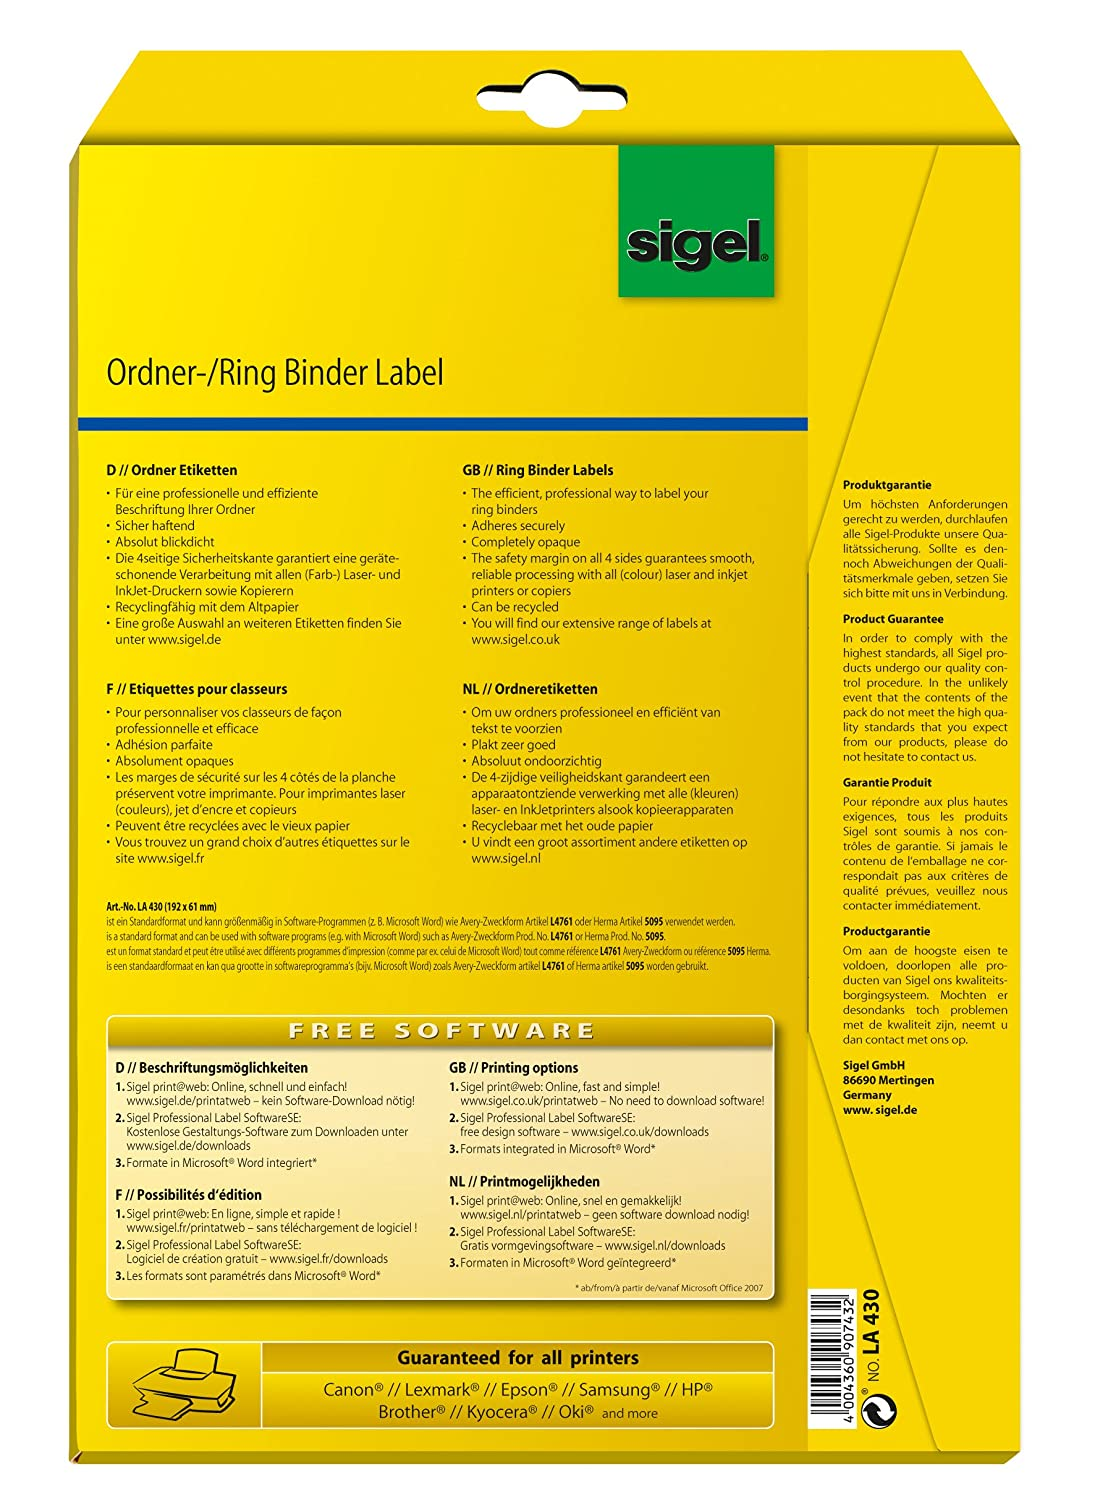 Sigel la450 ring binder labels, white, opaque, 61x297 mm (a4), 75.